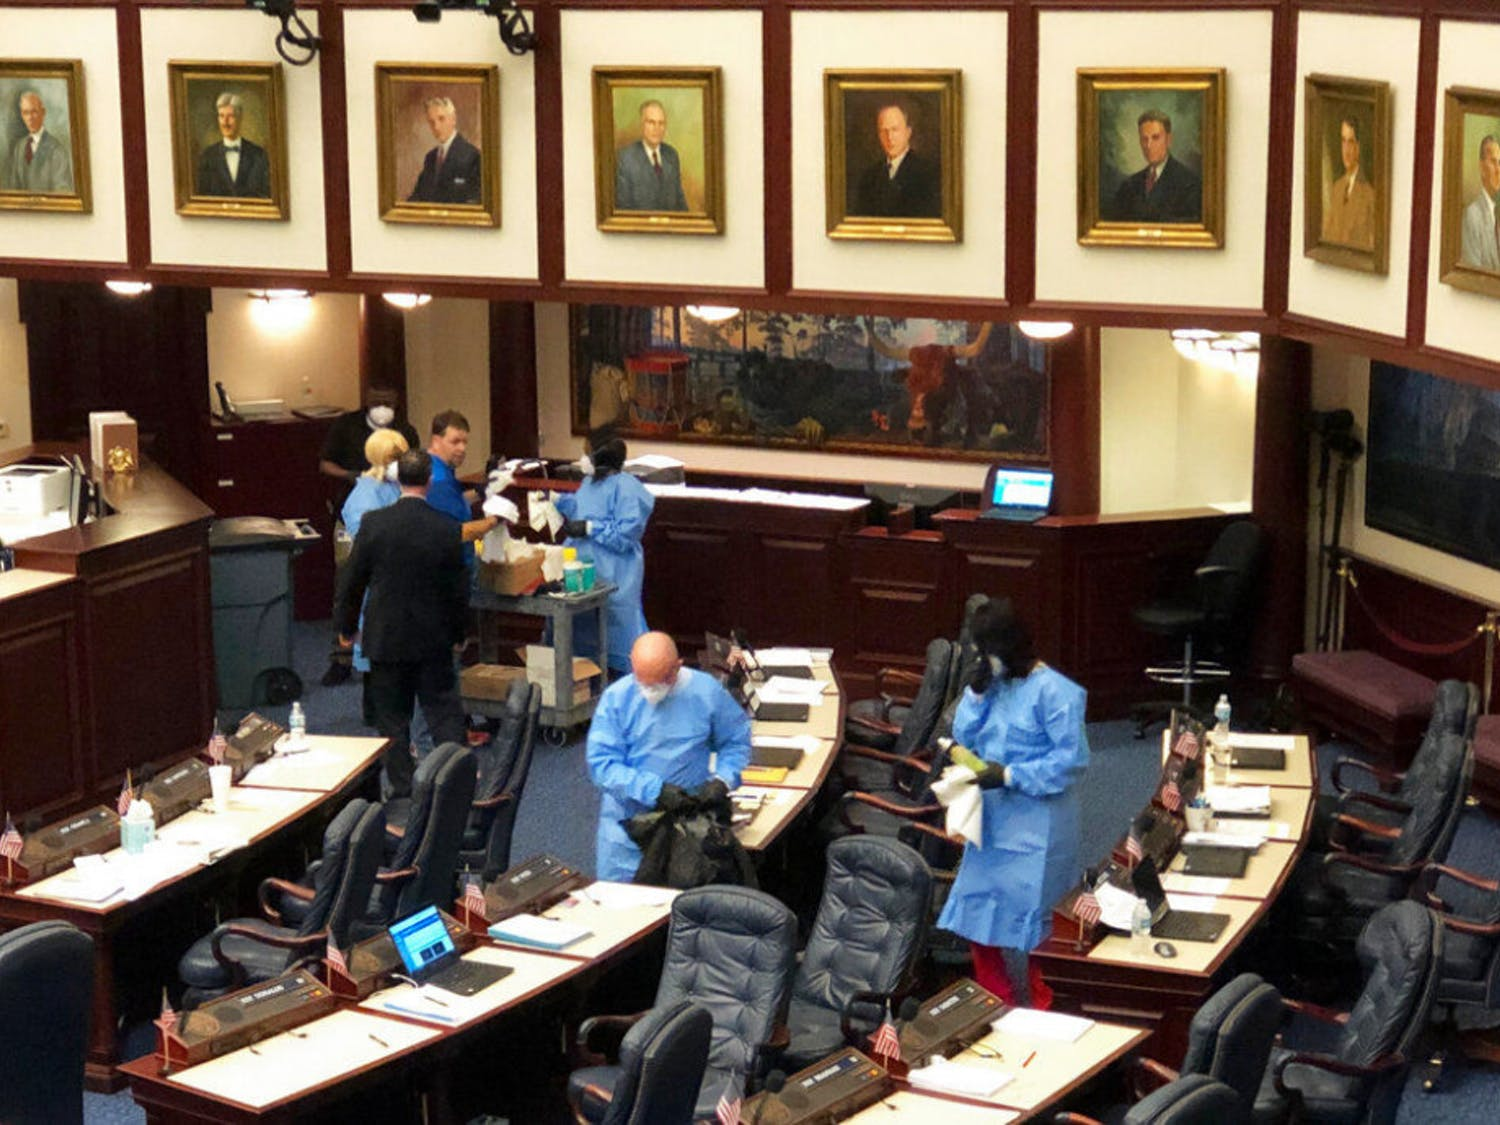 Crew members swab down Florida's House floor at the state Capitol in Tallahassee, Fla., Monday, March 9, 2020, after several members voluntarily submitted themselves for testing of a new strain of coronavirus. The Florida House abruptly recessed Monday afternoon and cleared public galleries after several of its members agreed to be tested for the new strain of coronavirus after recently attending a political event in Washington where one attendee tested positive for COVID-19. (AP Photo/Bobby Caina Calvan)